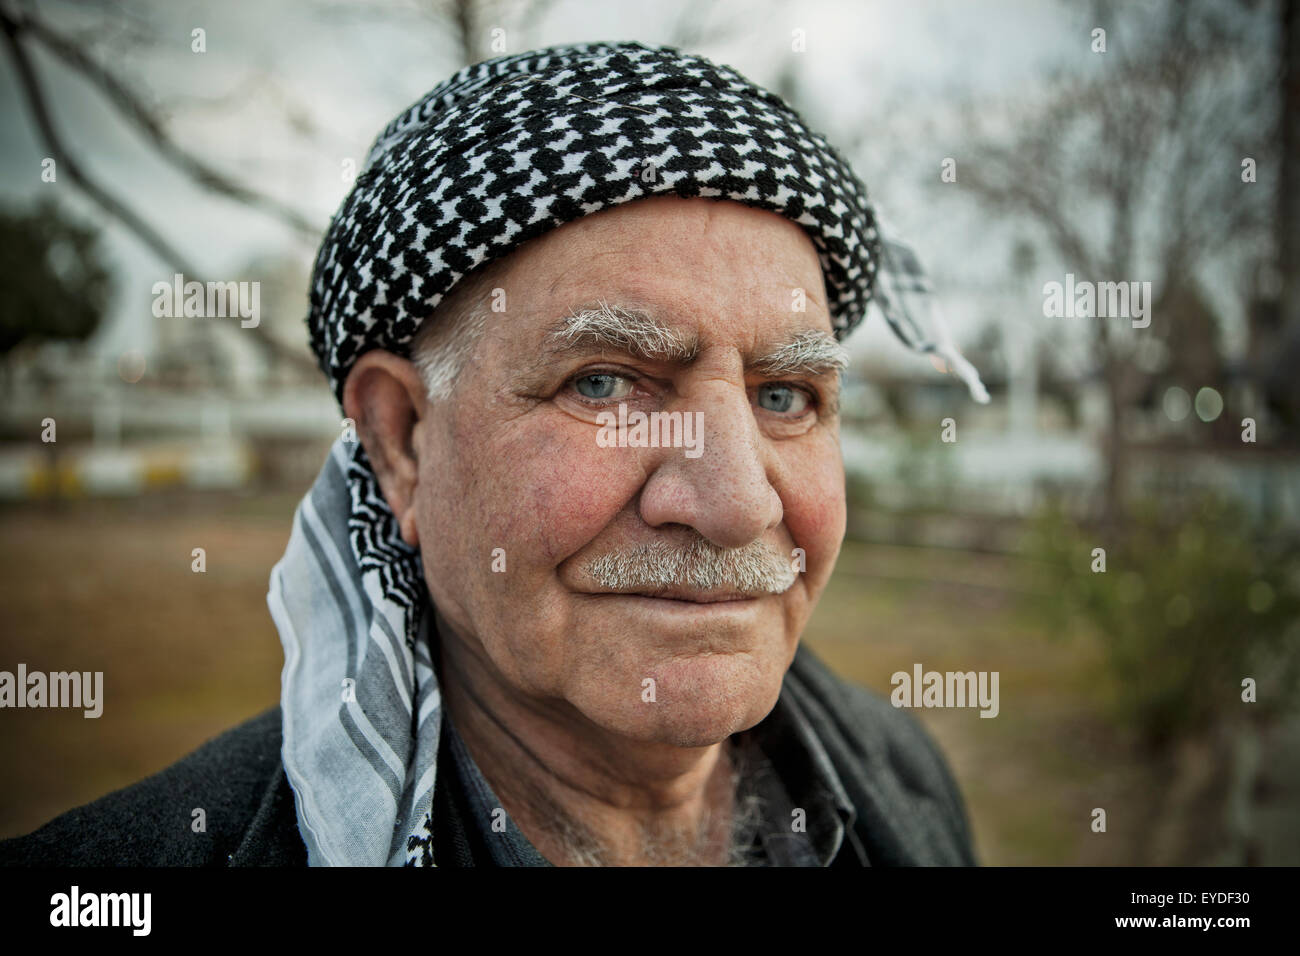 Portrait Of Kurdish Man, Sulaymaniyah, Iraqi Kurdistan, Iraq Stock Photo